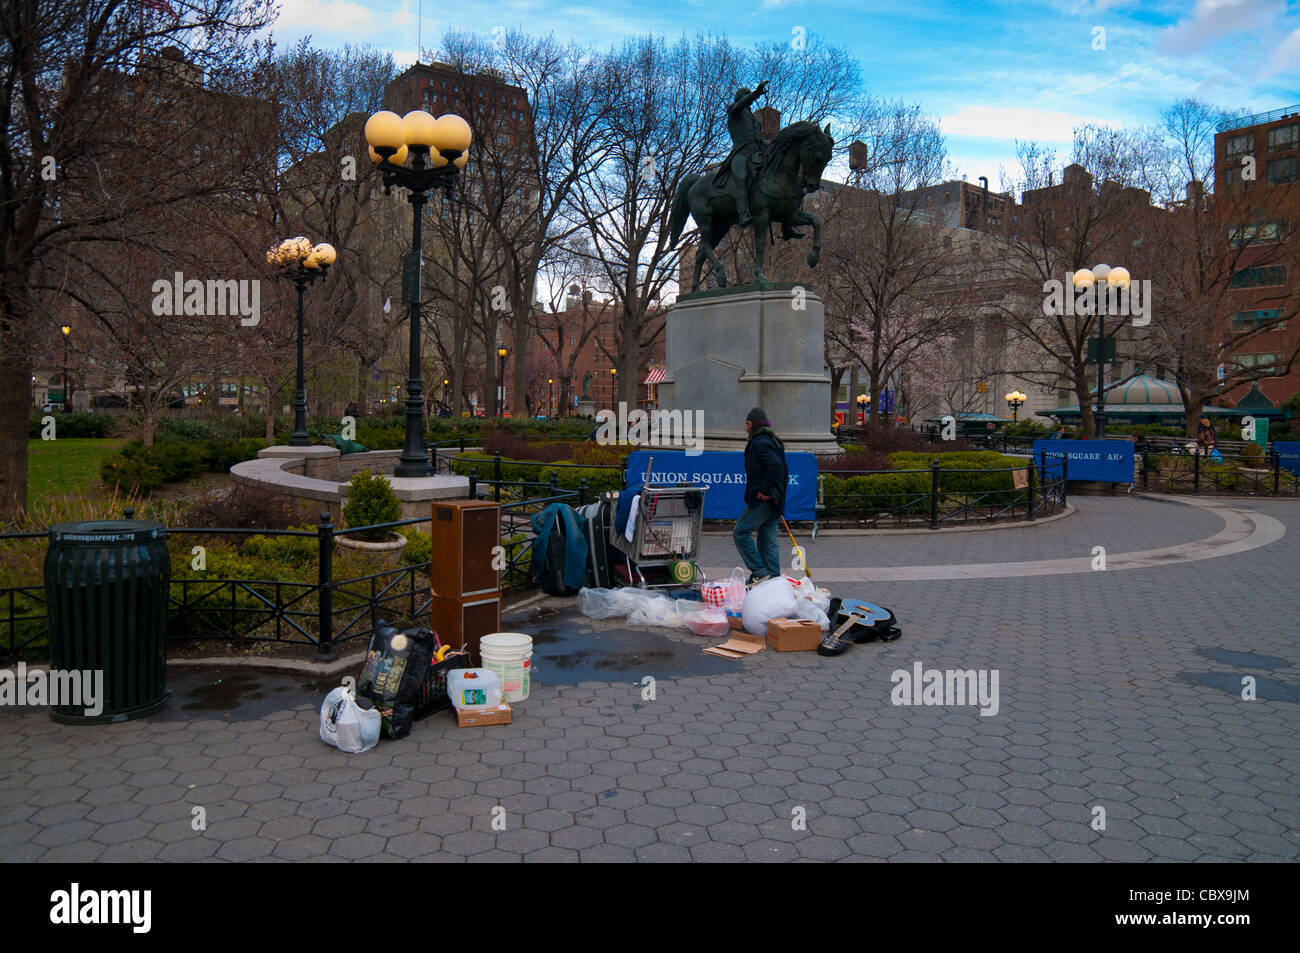 Hobo near the Statue of George Washington in the park of Union Square in Manhattan, New York City - Stock Image